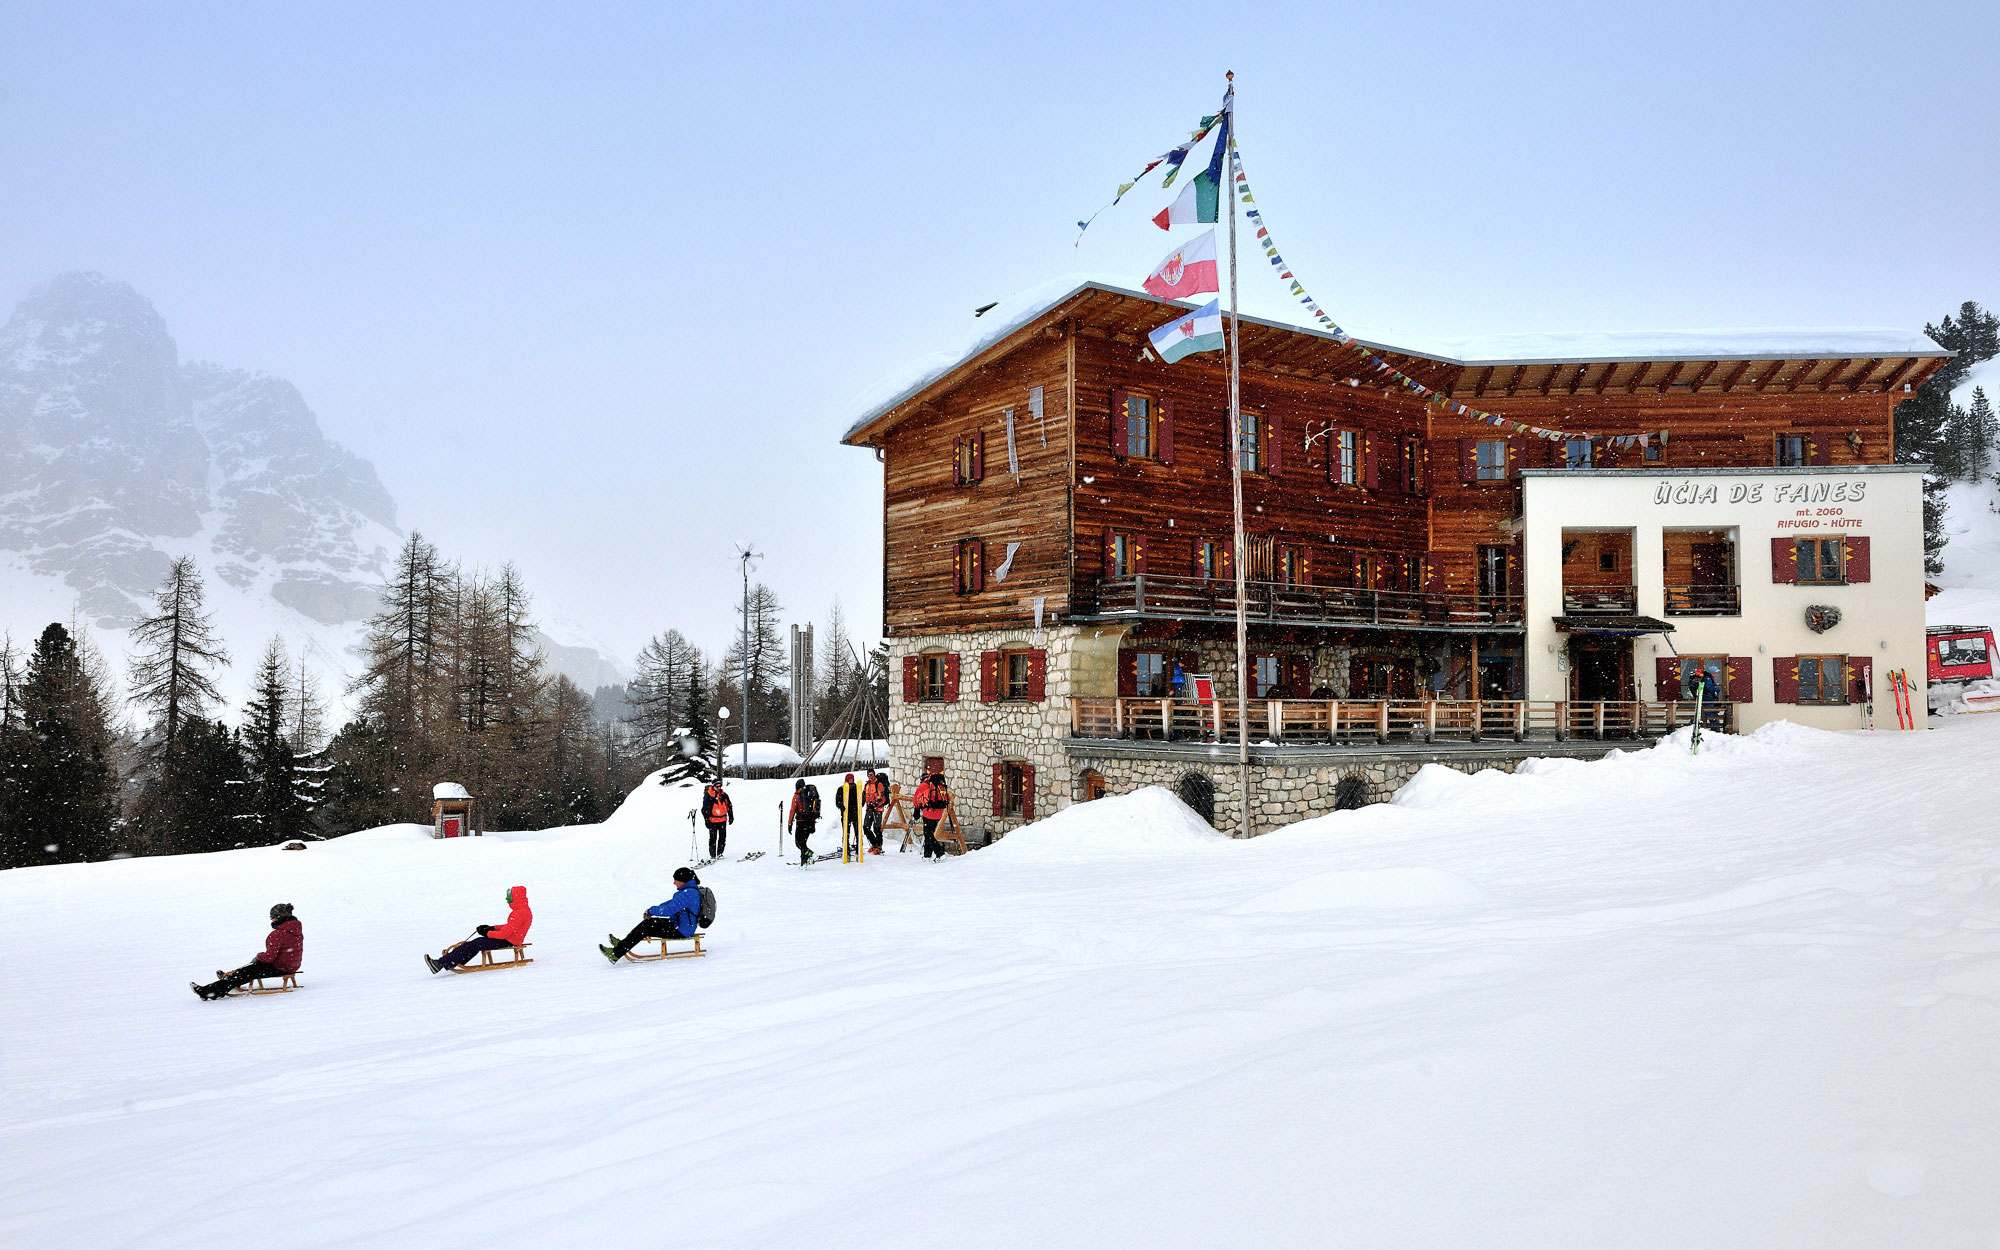 Europe's Coziest Winter Retreats: Rifugio Fanes, Dolomites, Italy